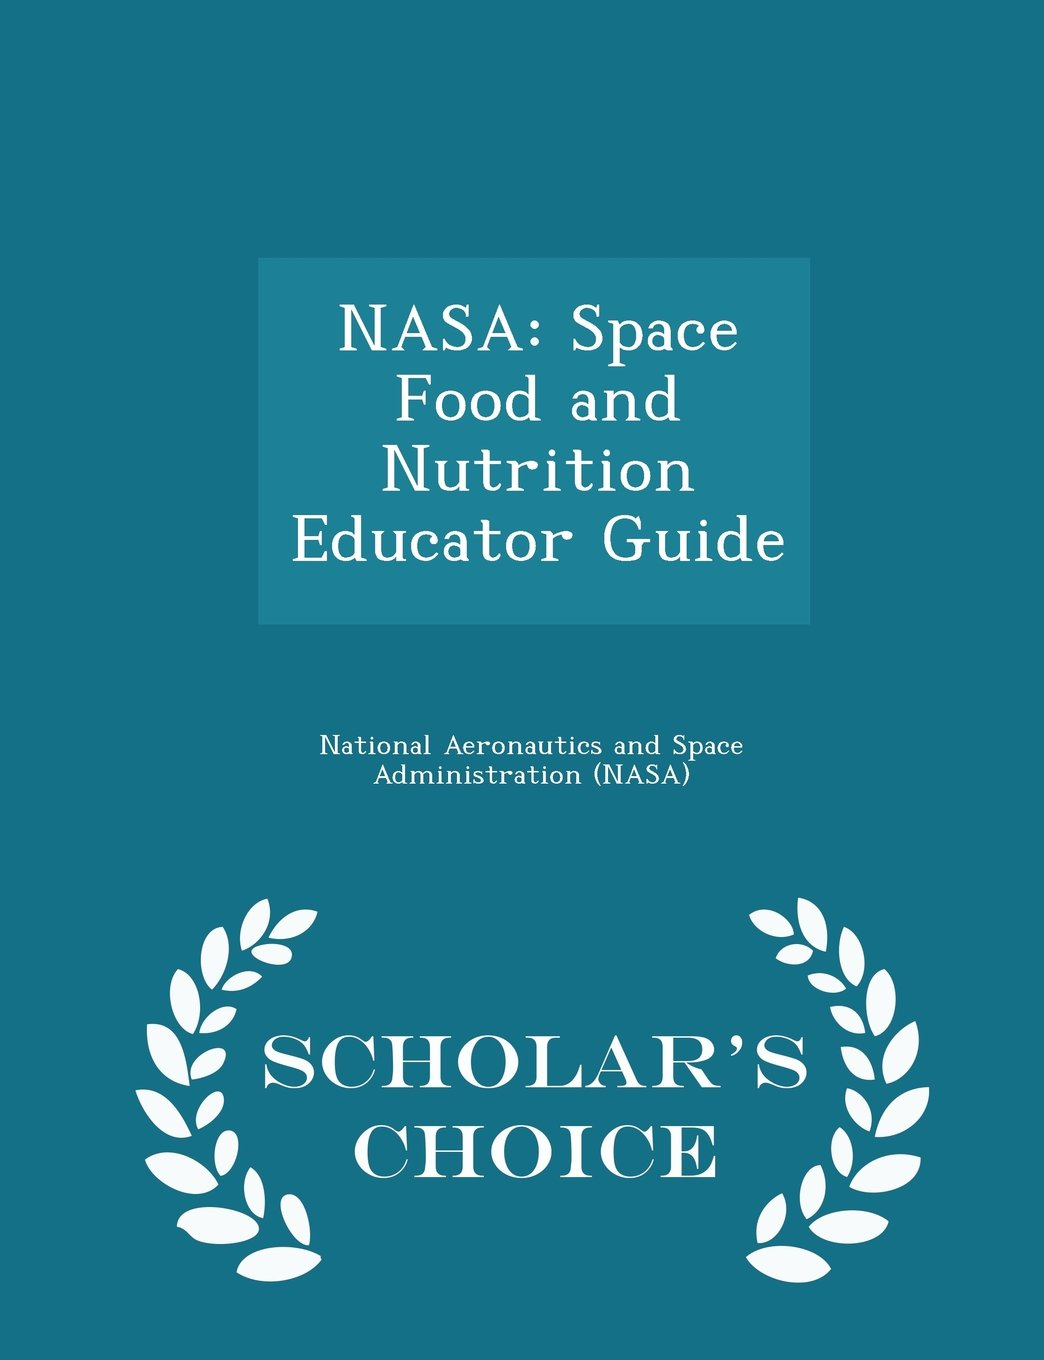 Space food and nutrition educator guide cover | nasa.